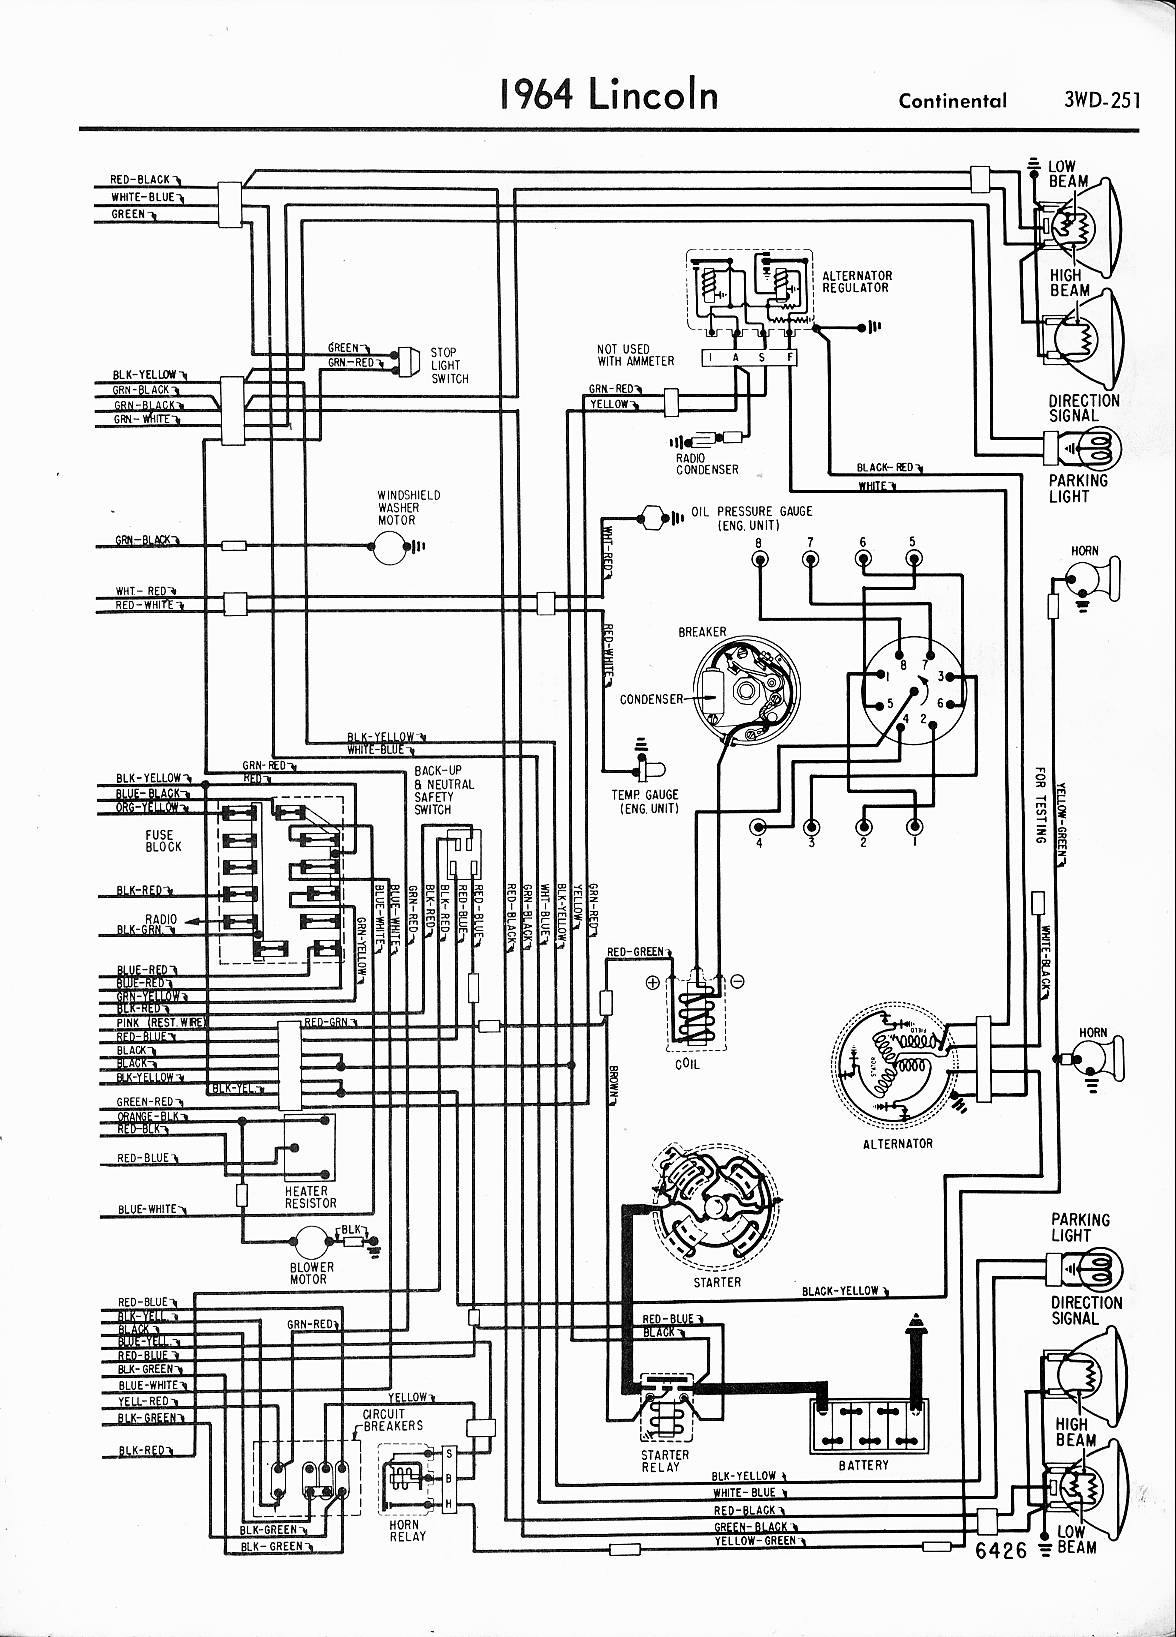 Lincoln Continental Fuse Box Diagram